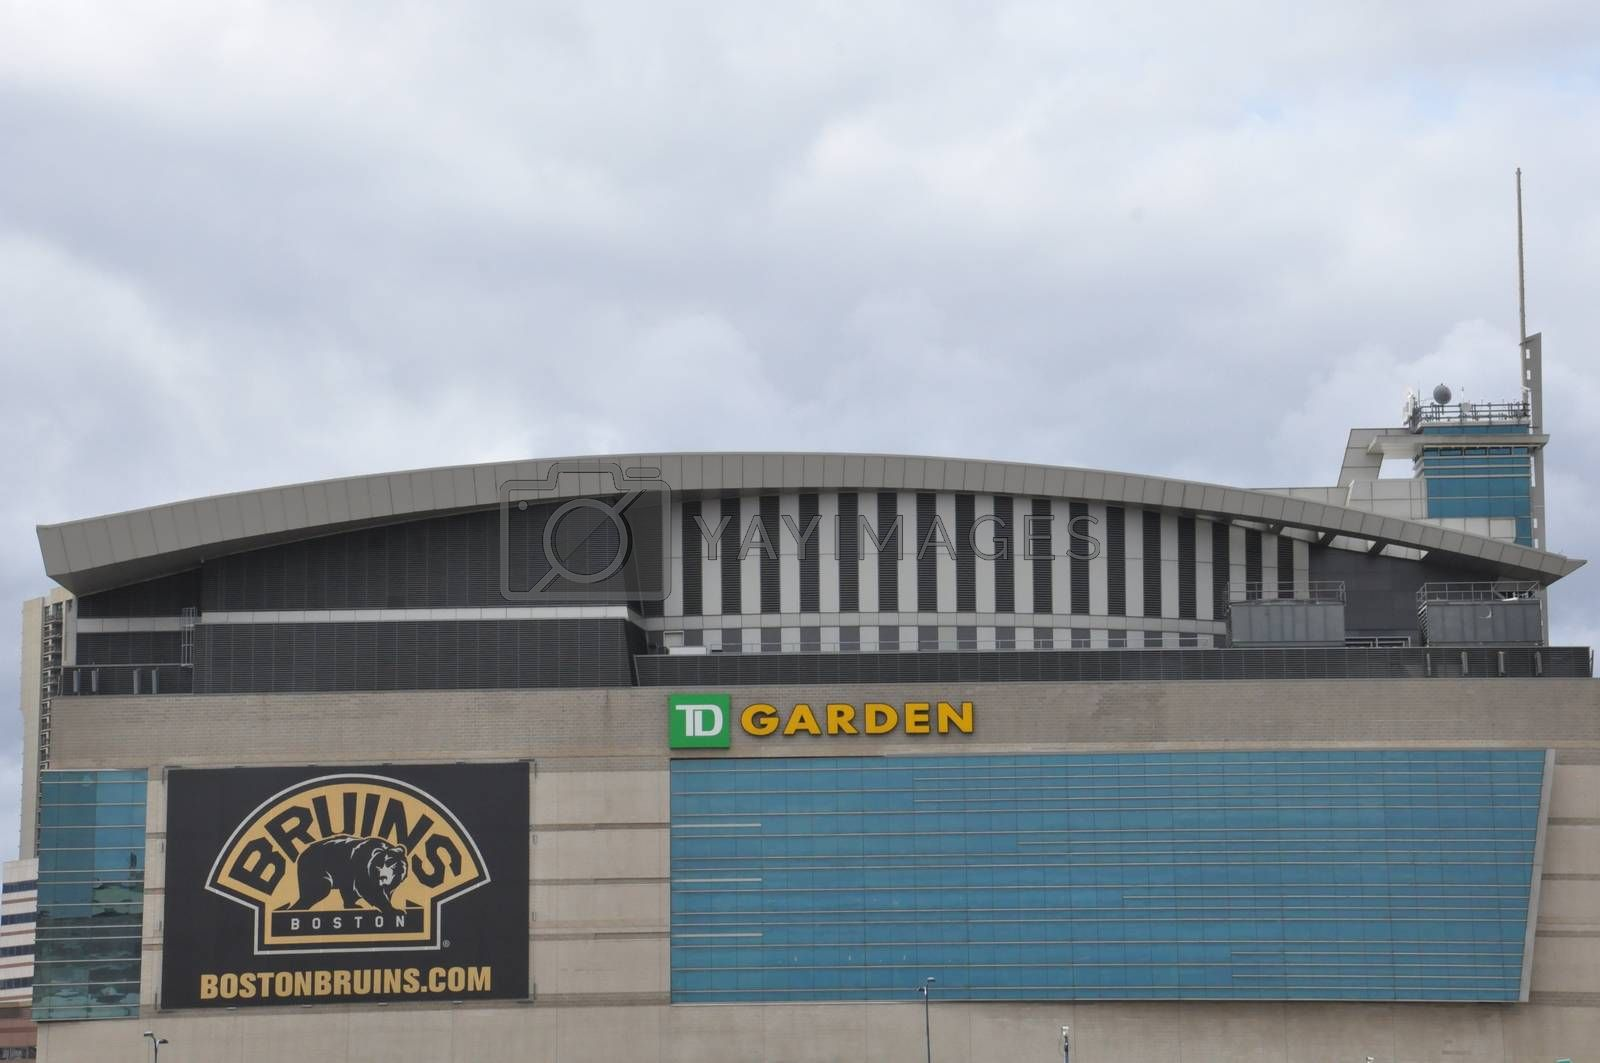 TD Garden in Boston. This is the home stadium of the Boston Bruins hockey team and the Boston Celtics baseball team located in Boston.